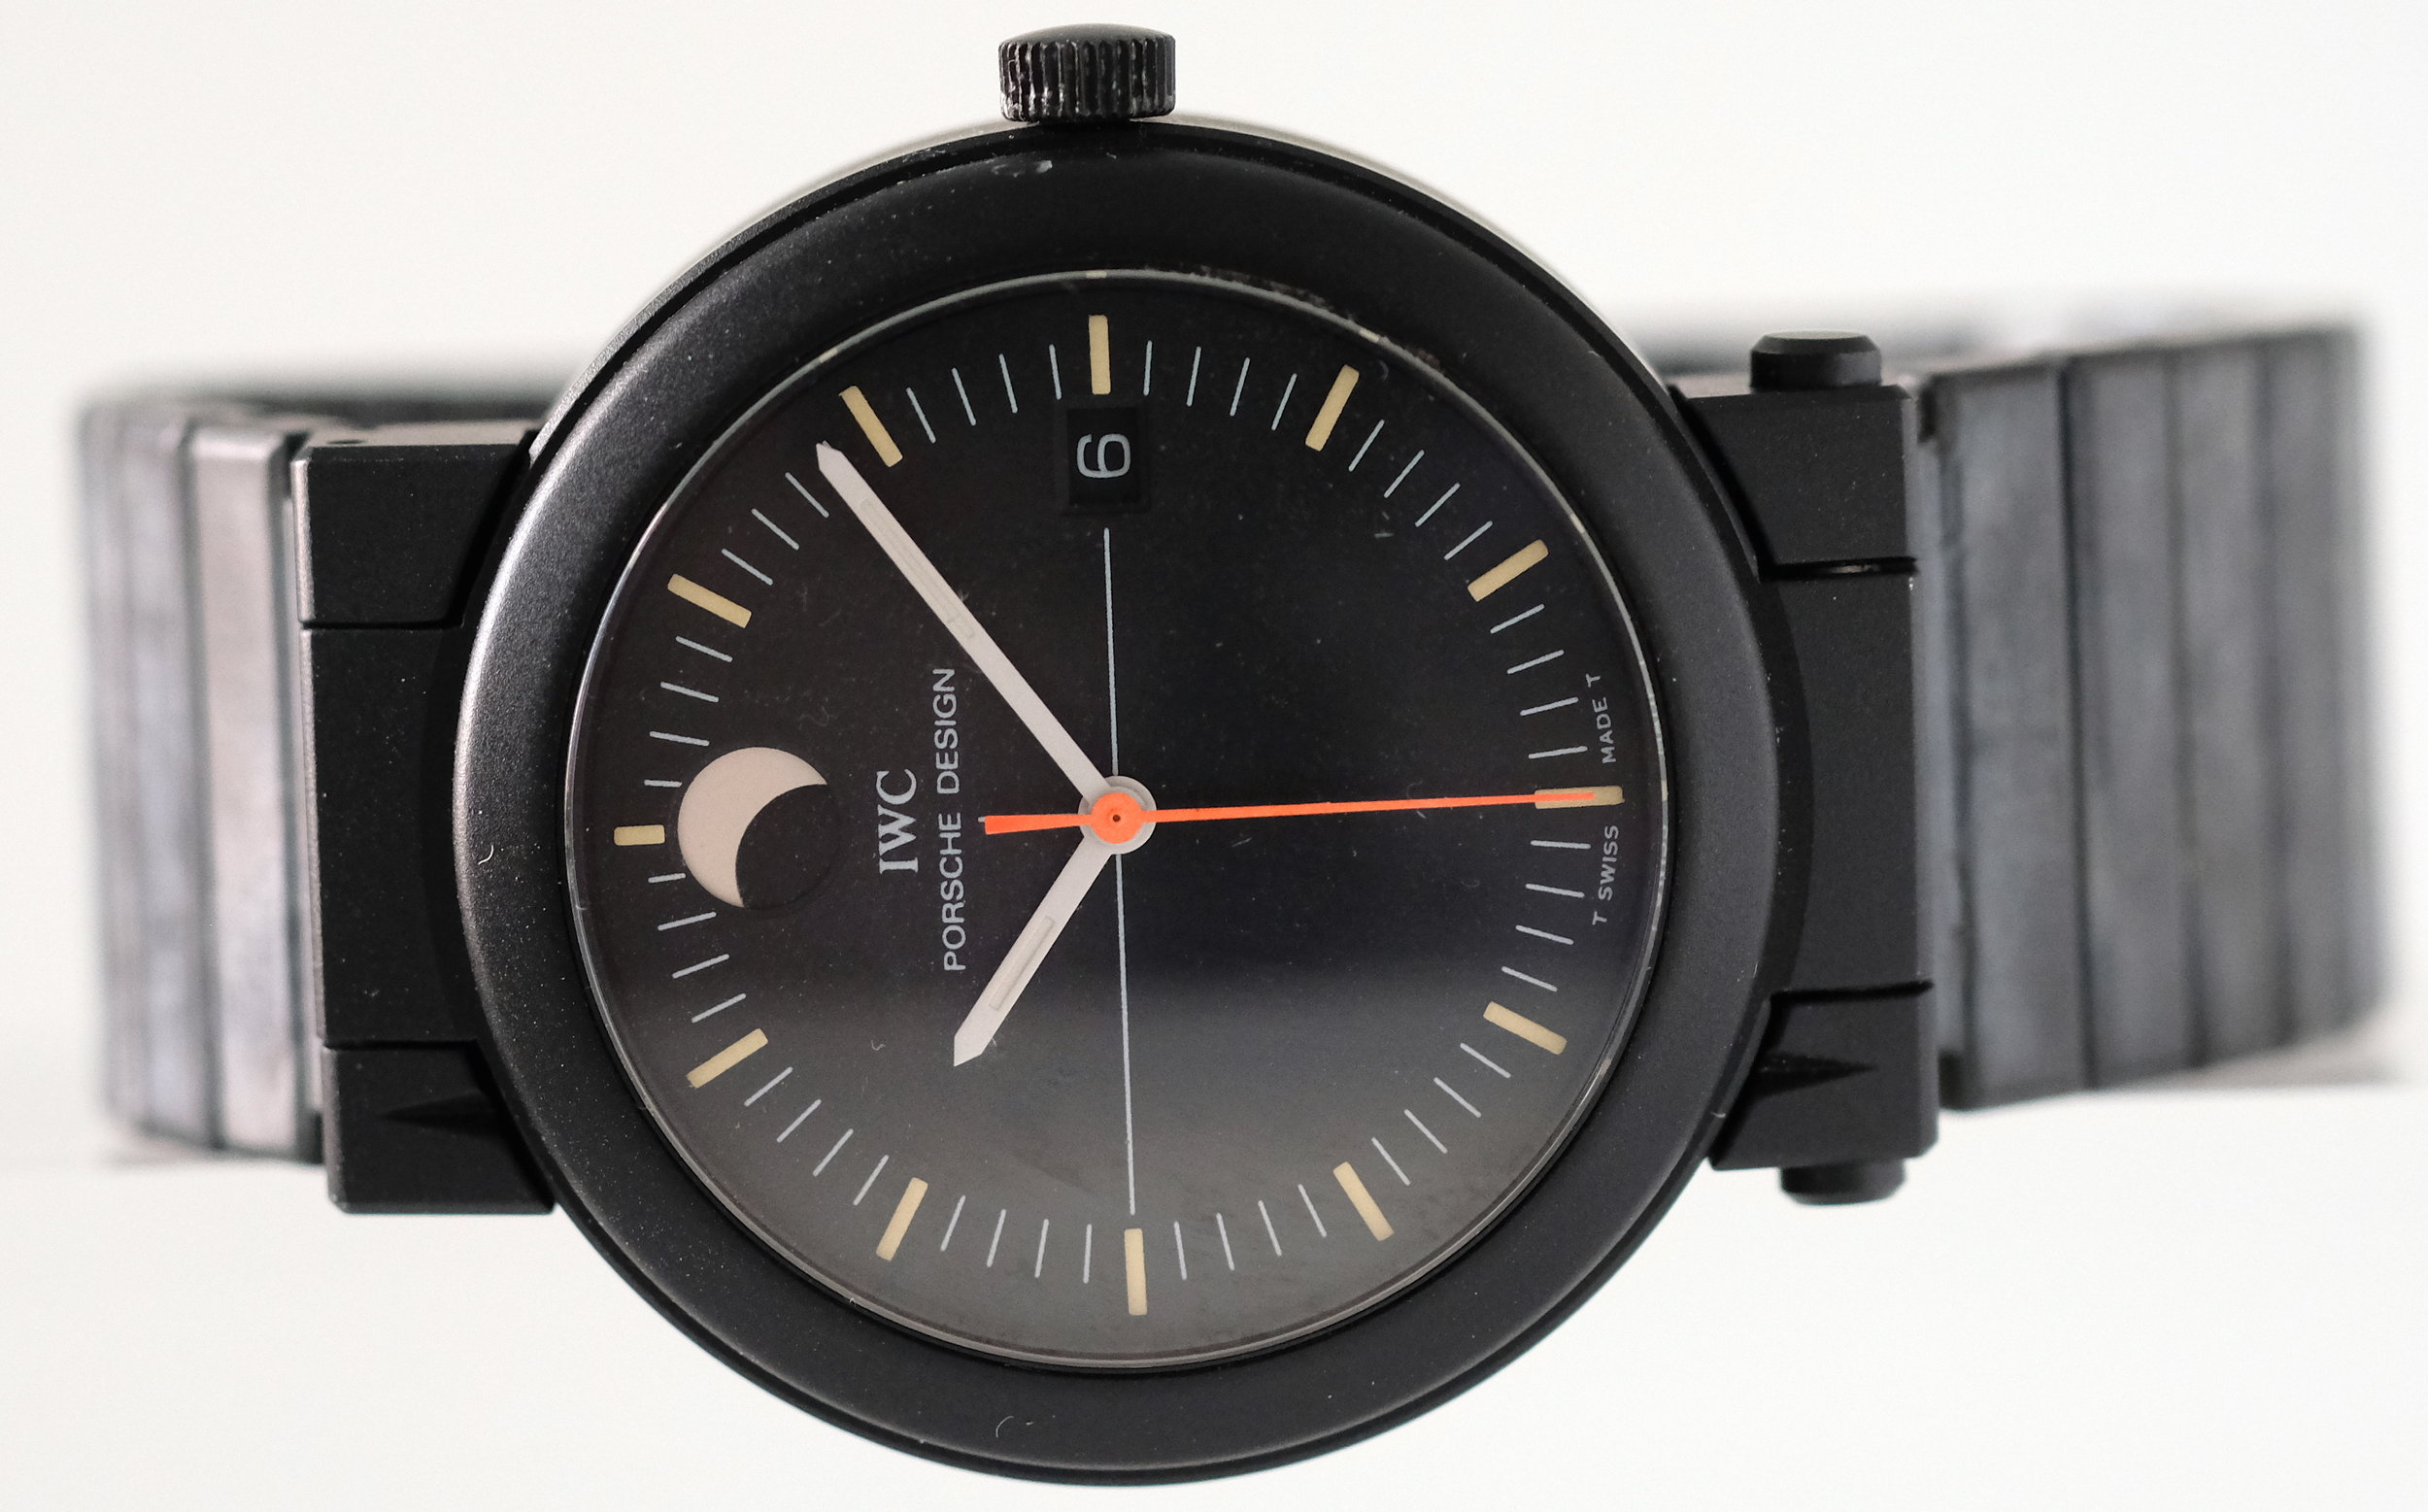 Porsche Design by IWC Compass Moonphase  Price: $2,950